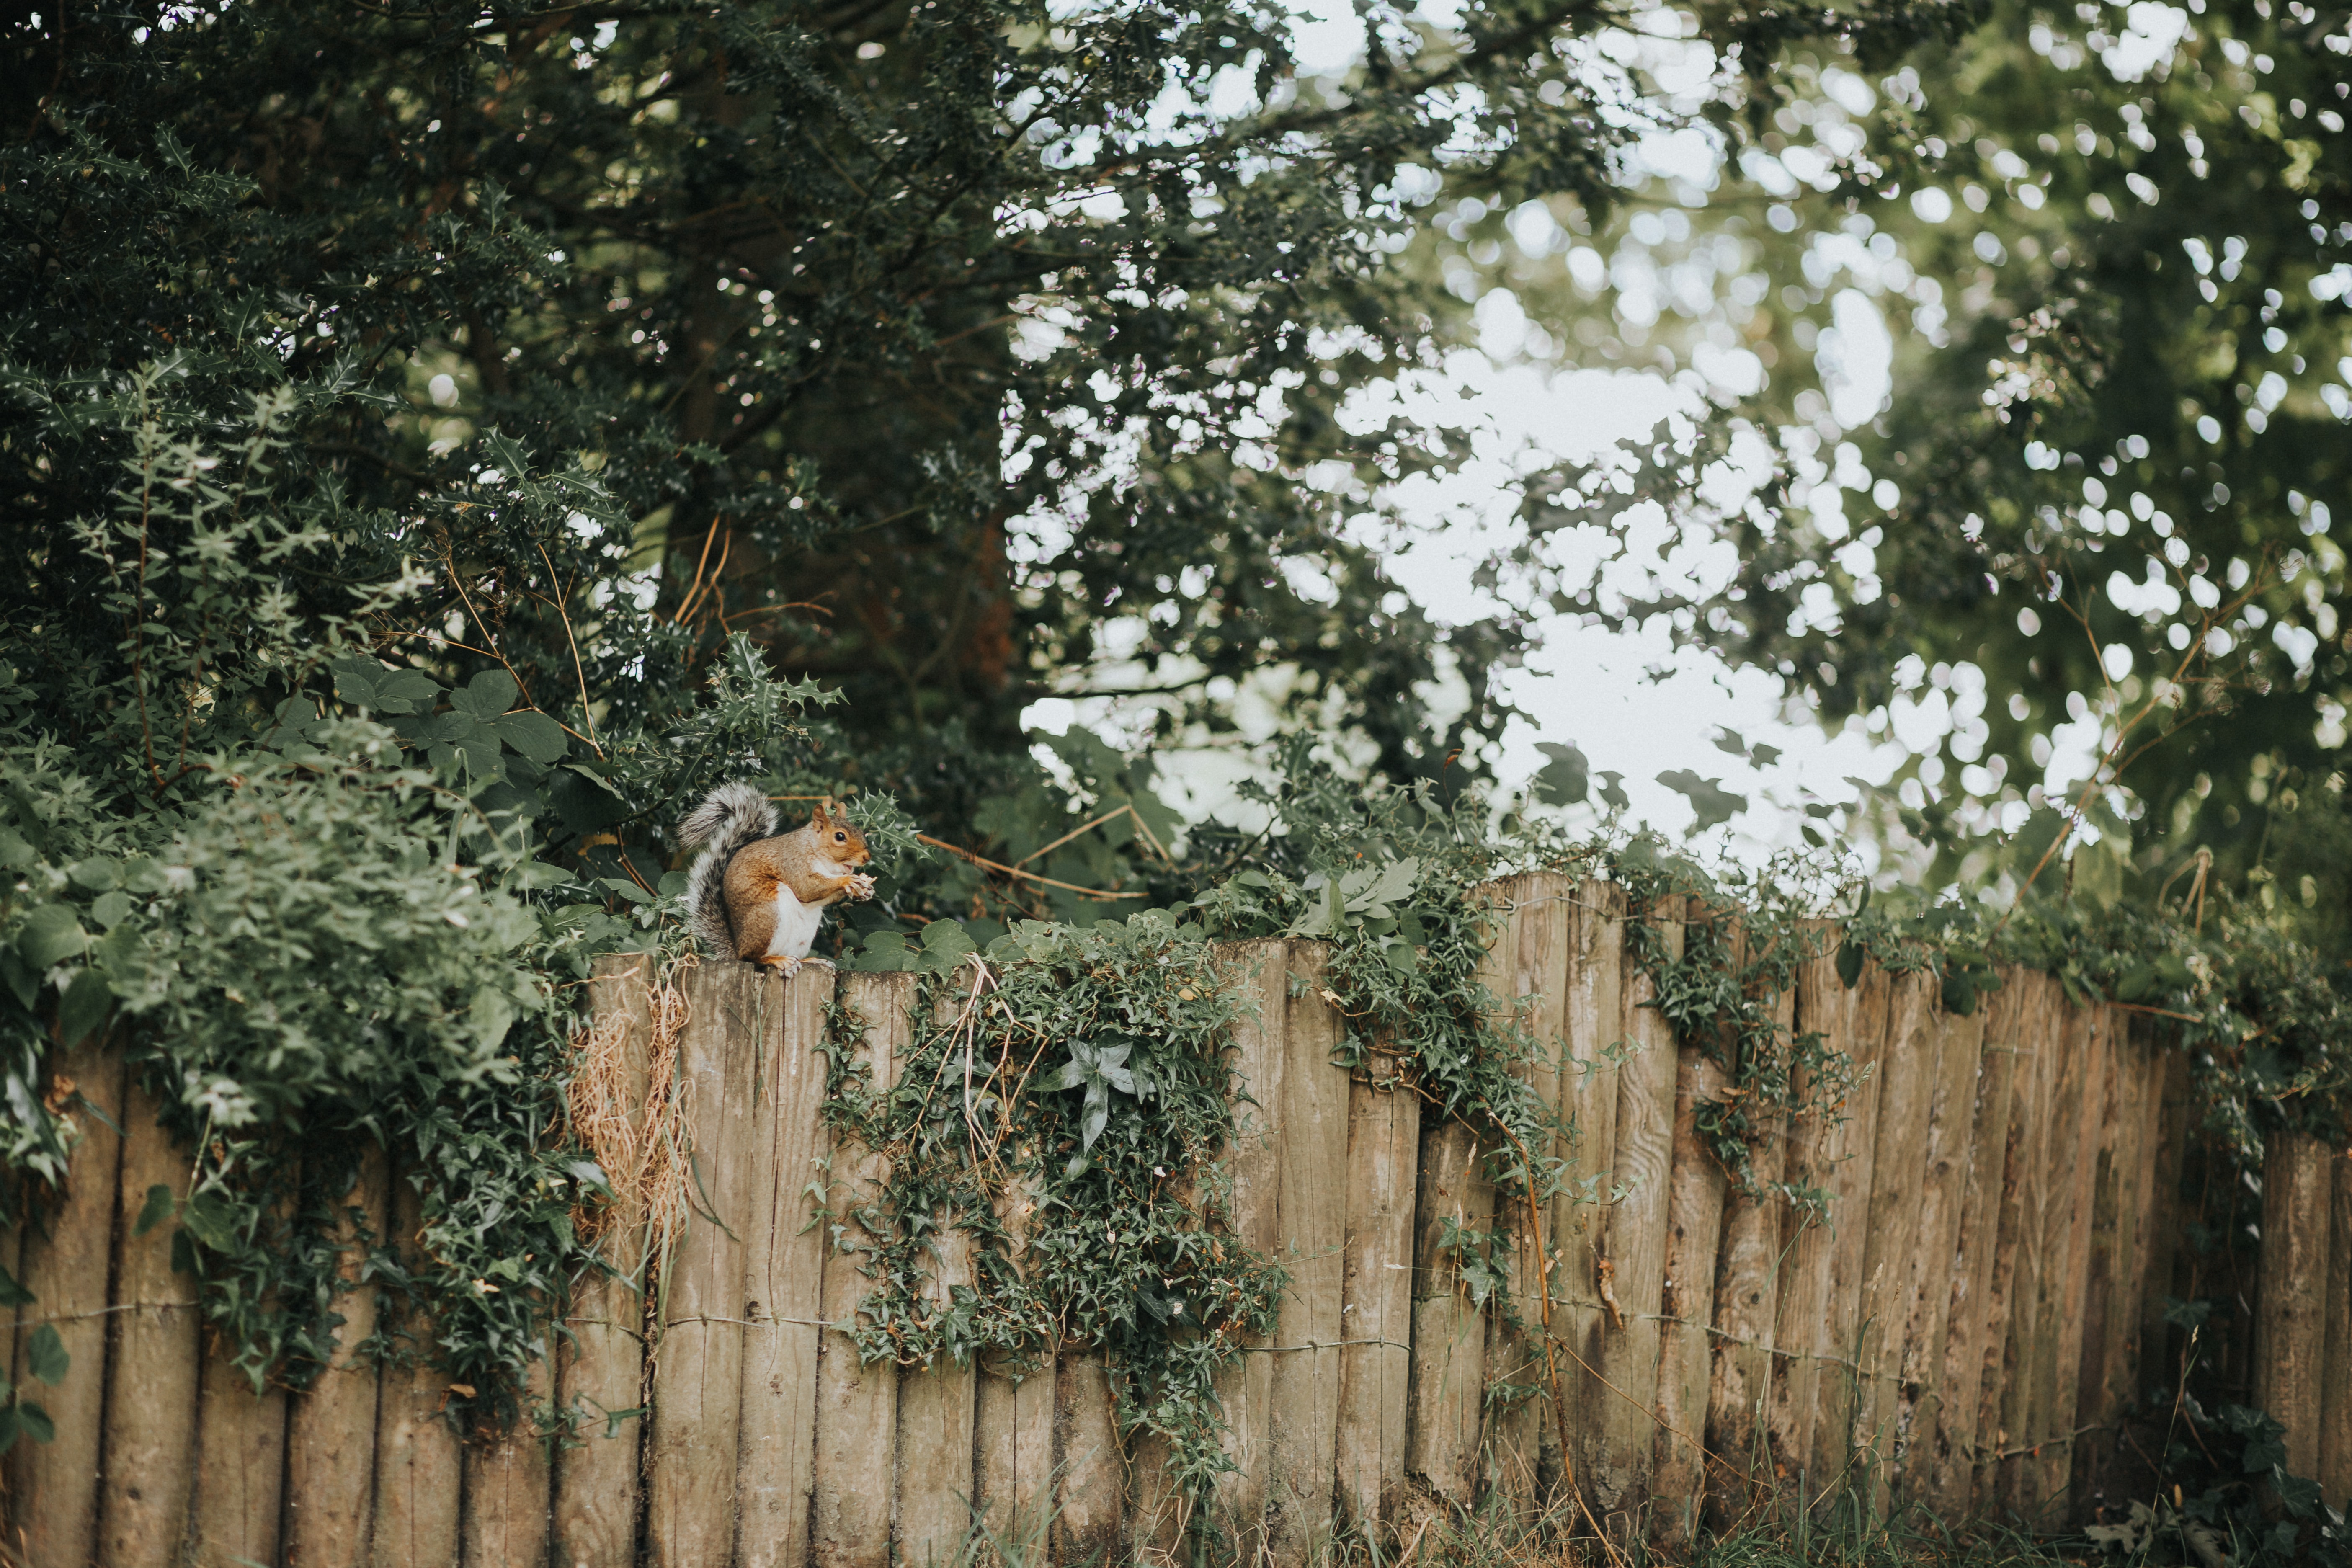 squirrel on wooden fence